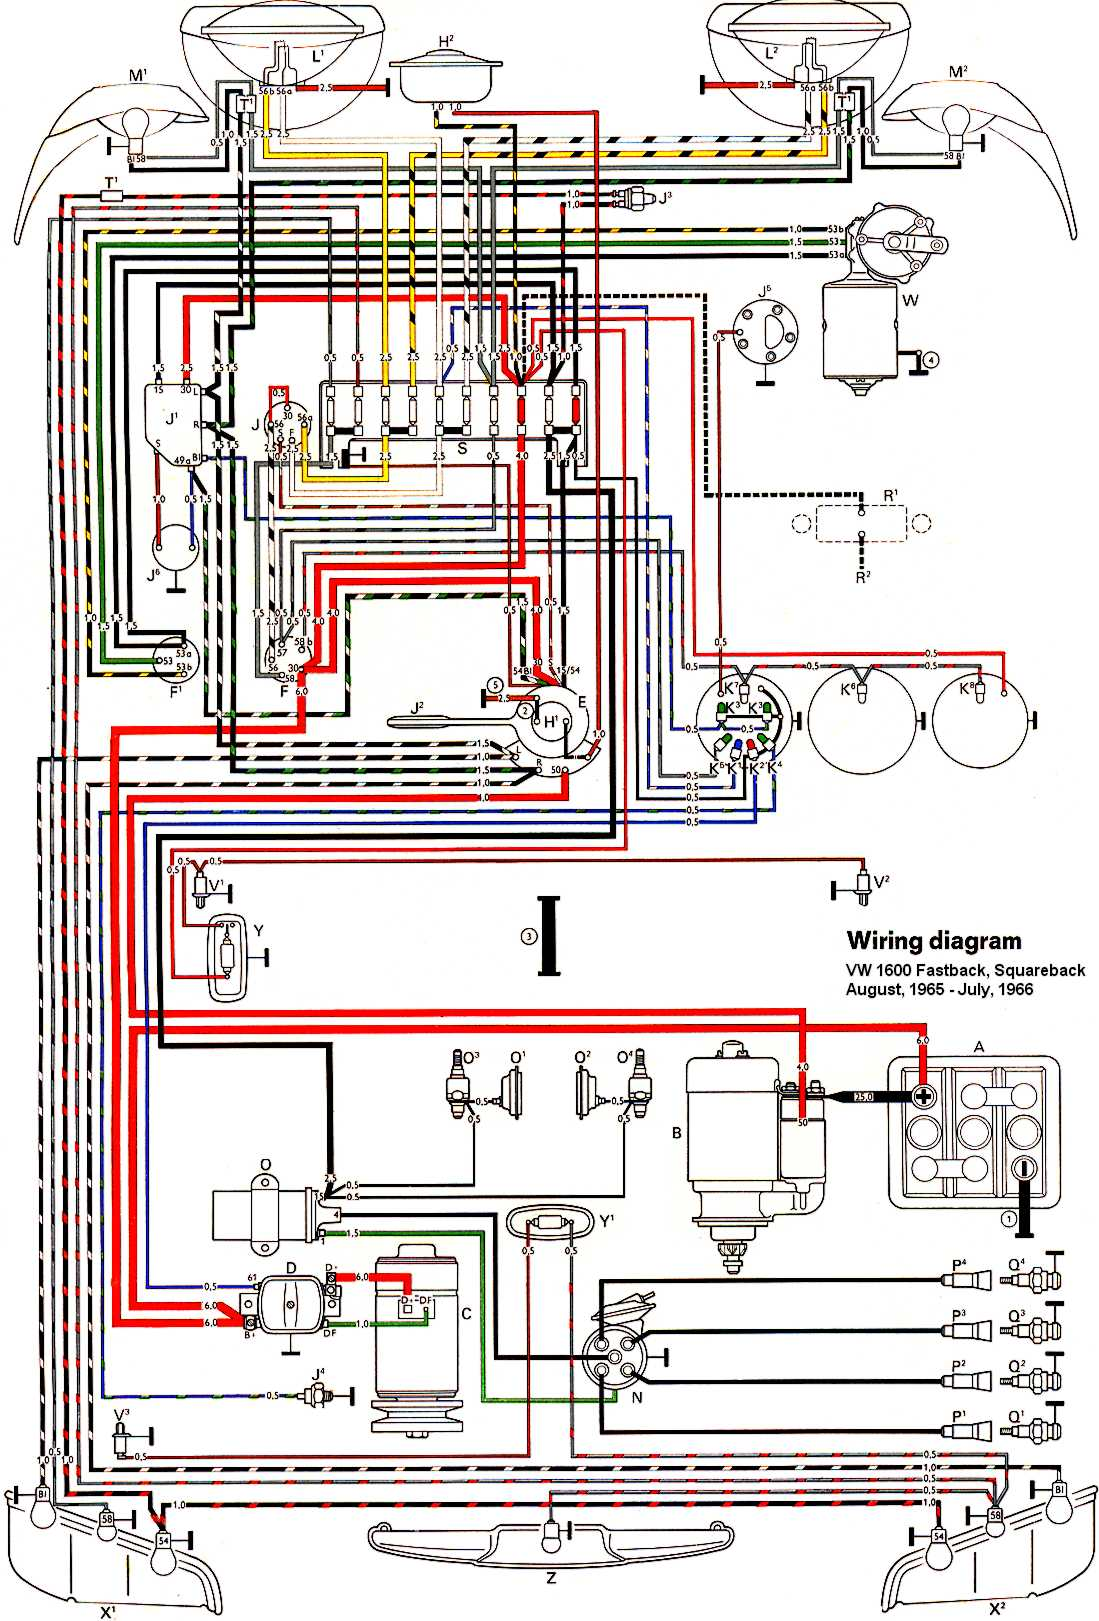 2004 Vw Passat Engine Diagram Wiring Worksheet And Bug Easy Rules Of U2022 Rh Ideoder Co Uk 1z 2007